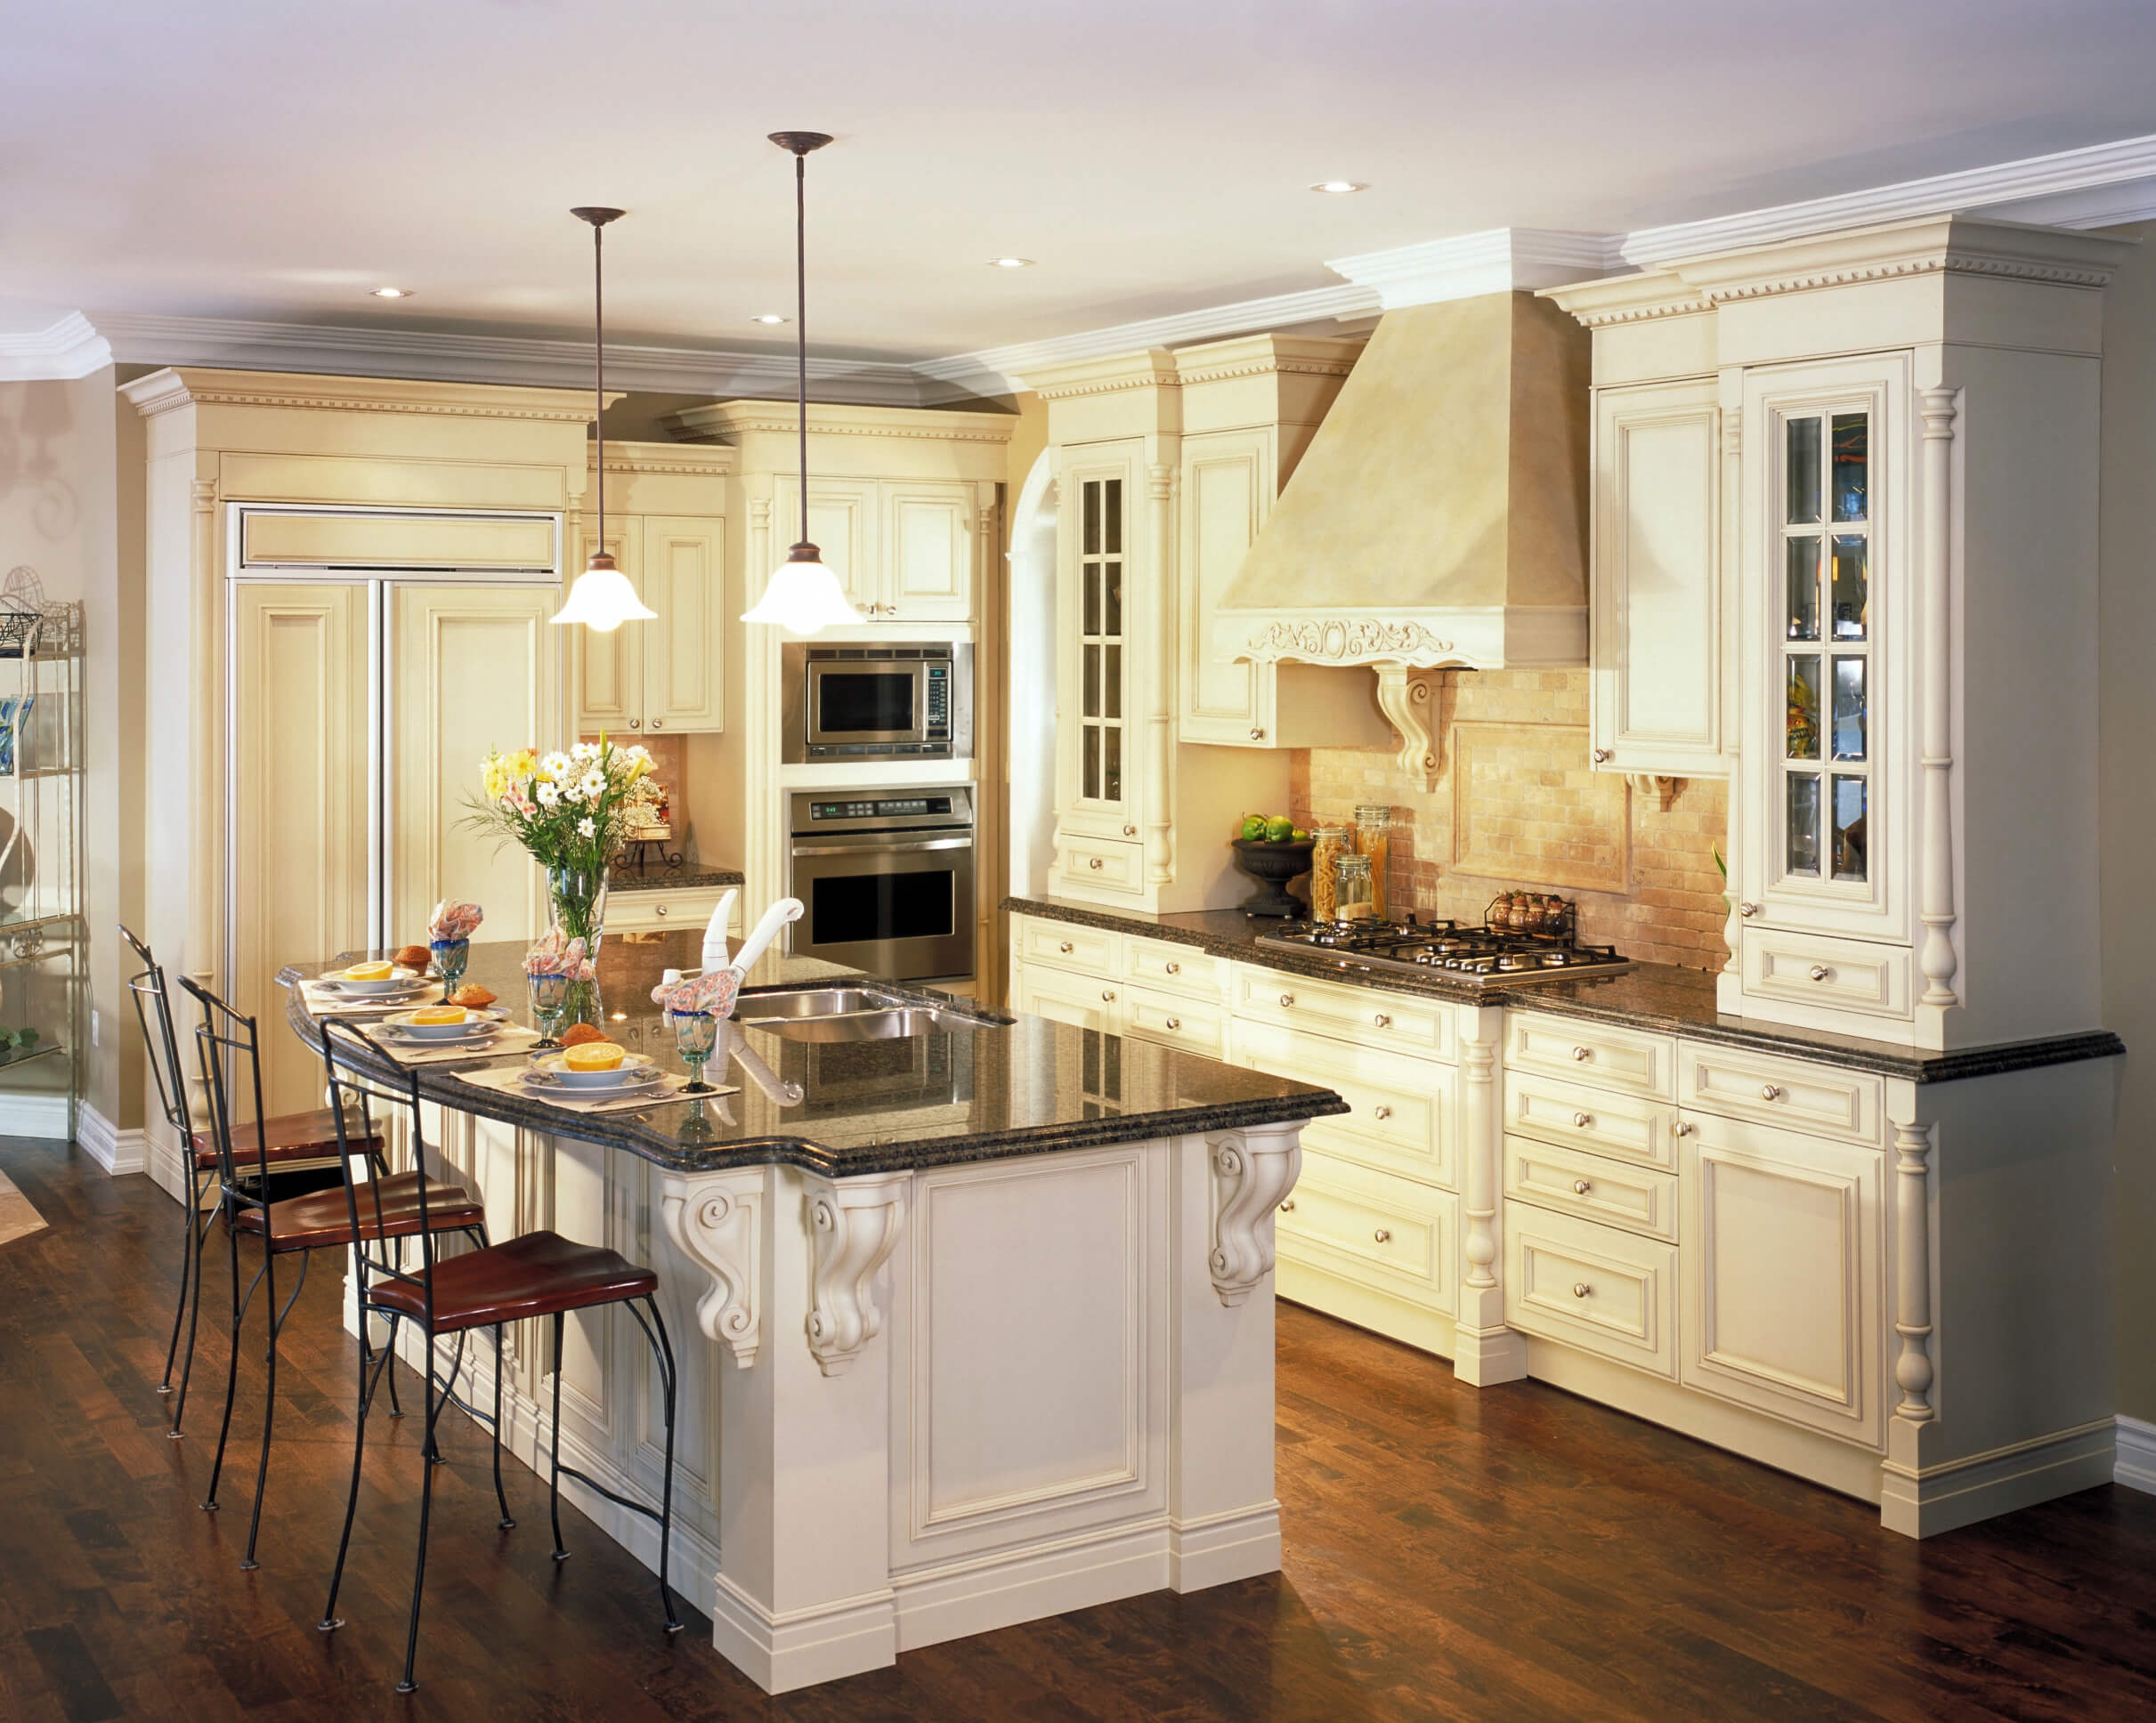 luxury dream kitchen designs worth every penny photos,Dream Kitchen White,Kitchen cabinets